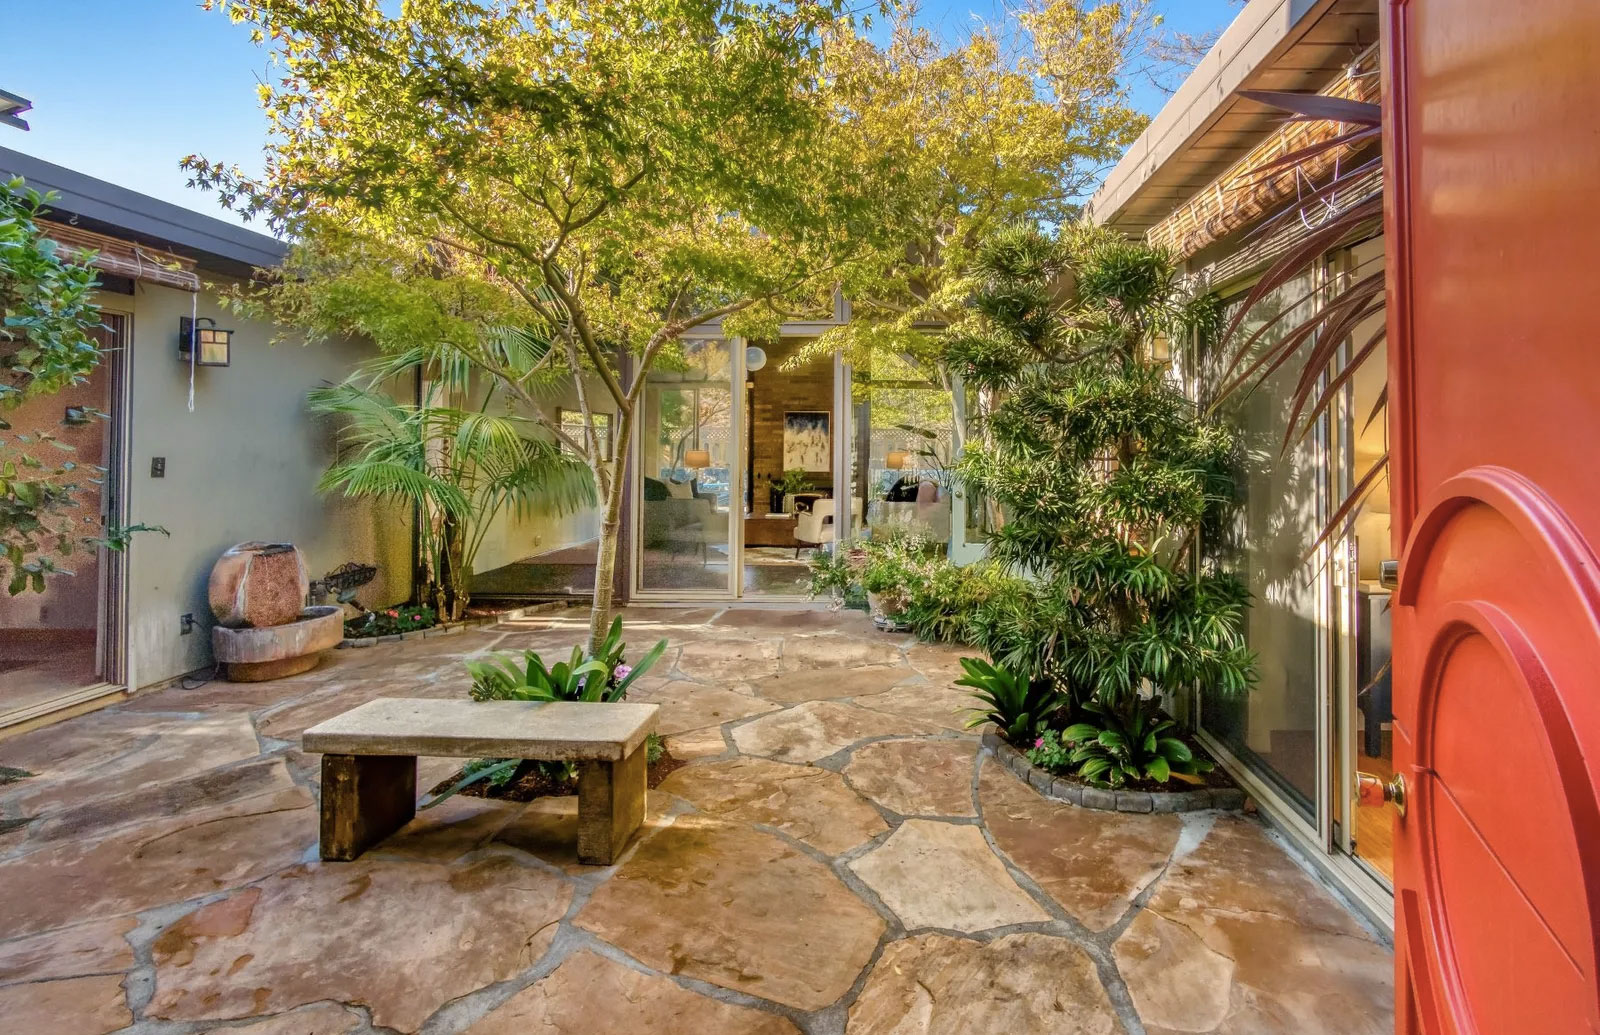 Photography: Michael McInerney for Golden Gate Sotheby's International Realty